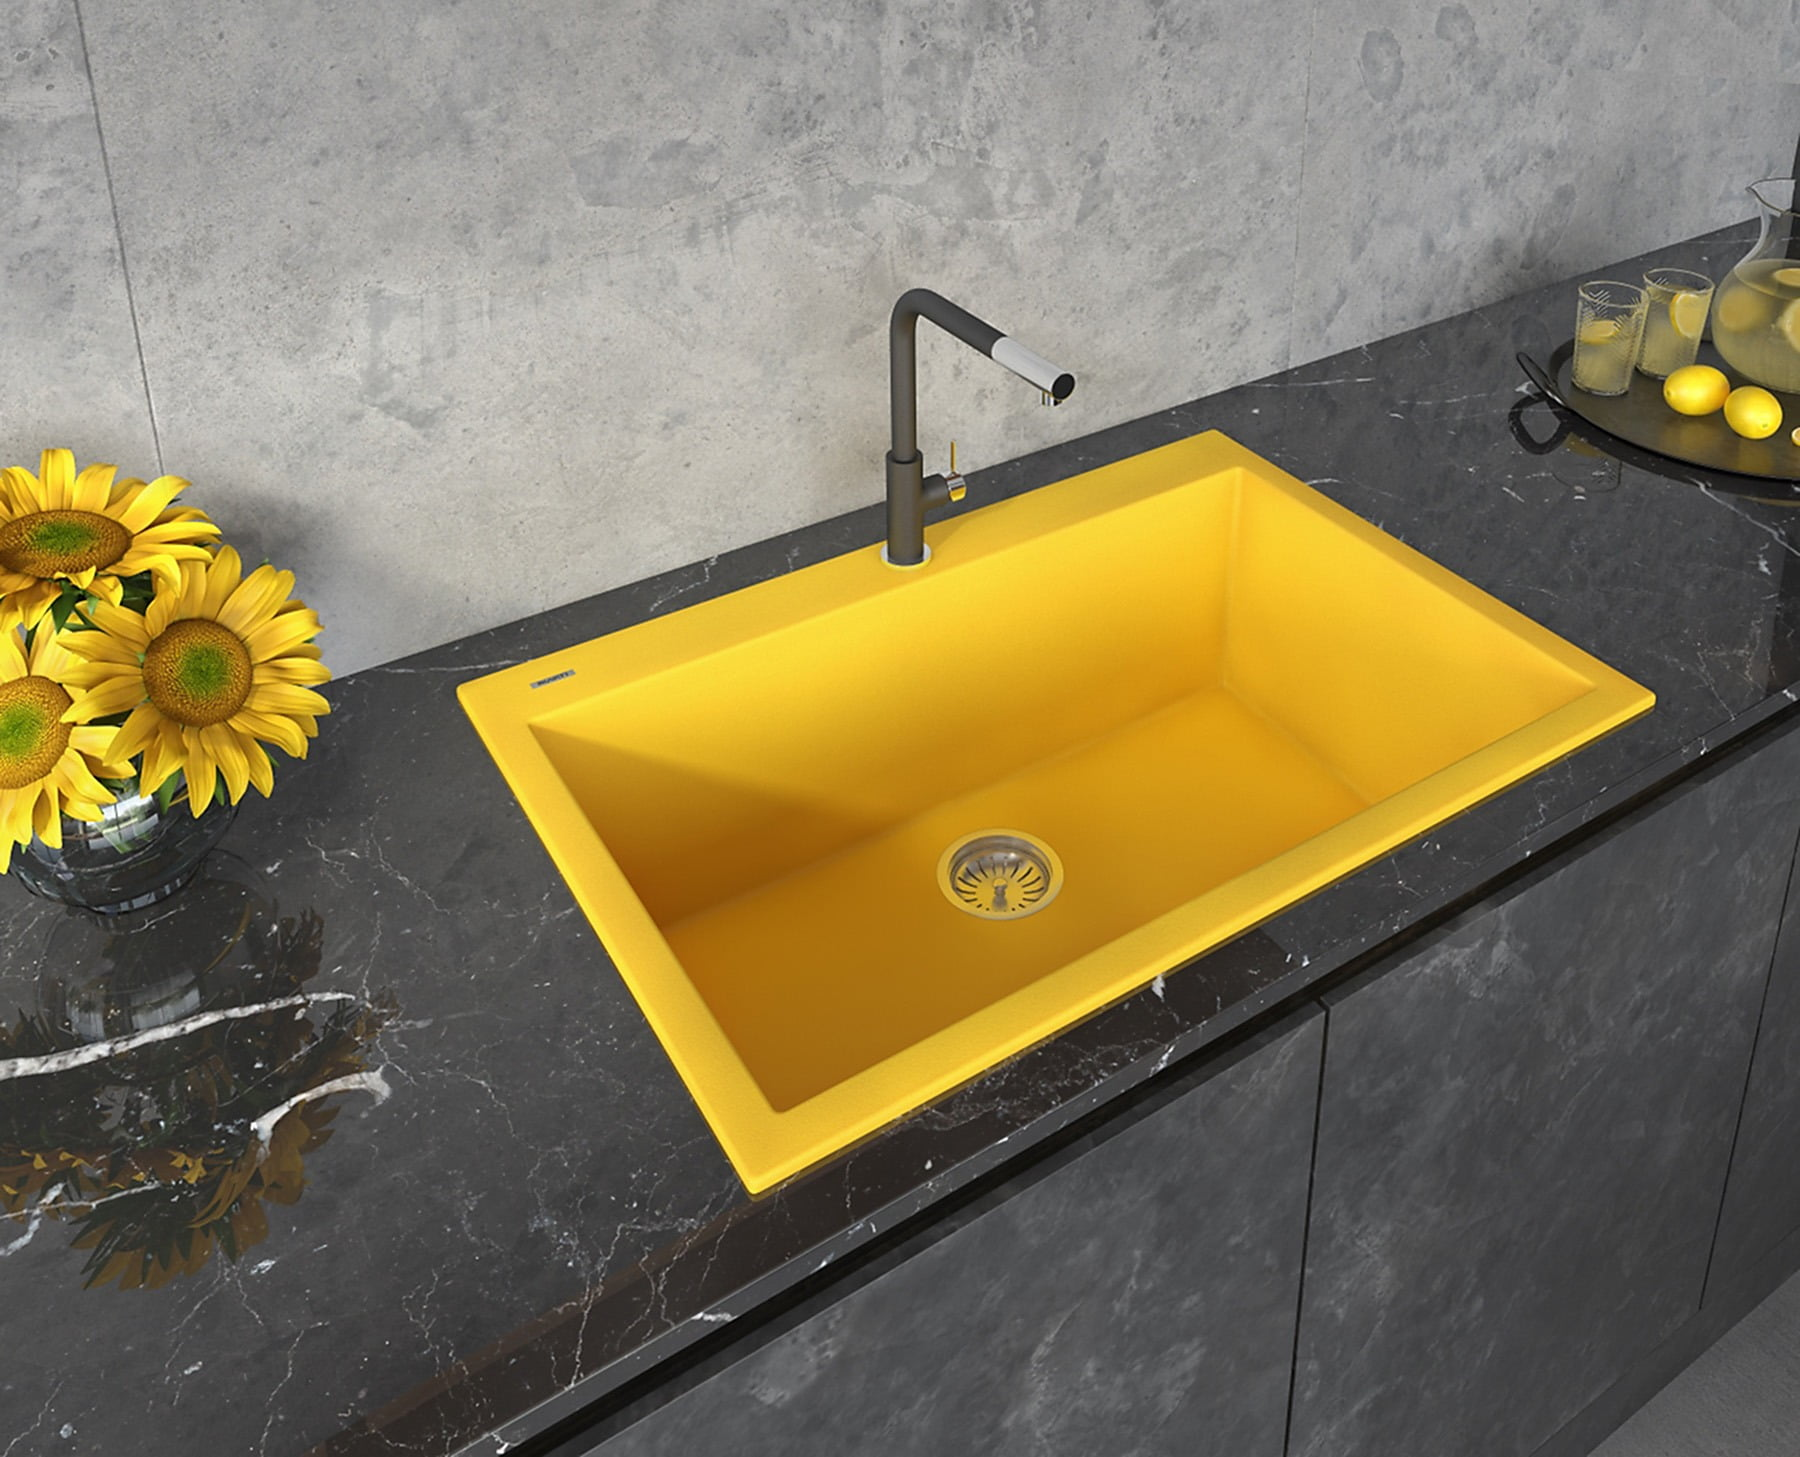 Bathroom sink, Plumbing fixture, Tile, Petal, Tap, Sunflower, Property, Yellow